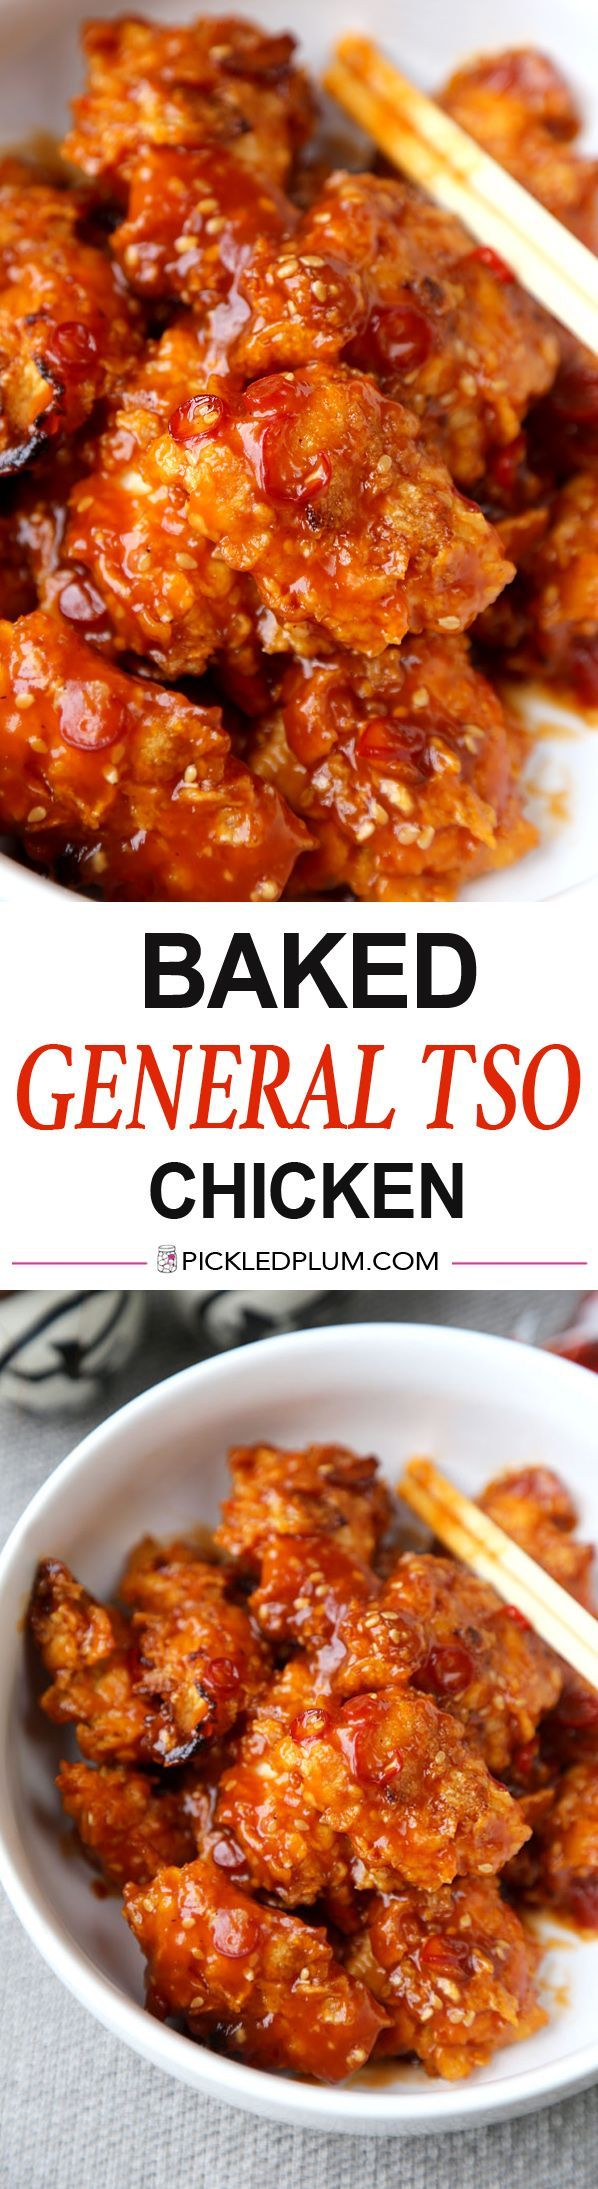 Baked General Tso Chicken Recipe – Pickled Plum